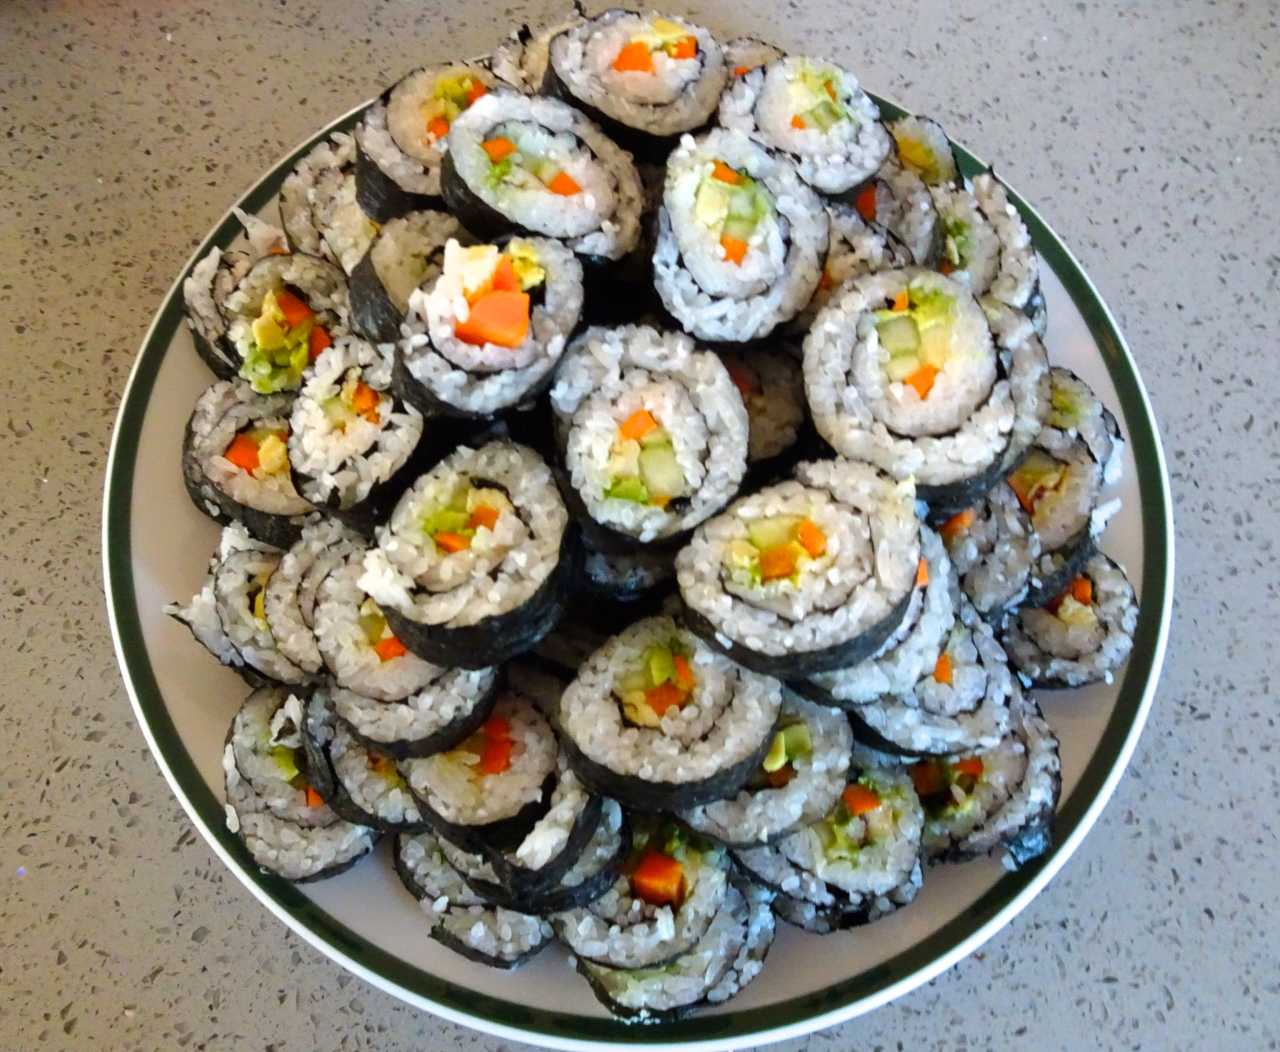 It's easy to make a lot of sushi, with only a few ingredients.